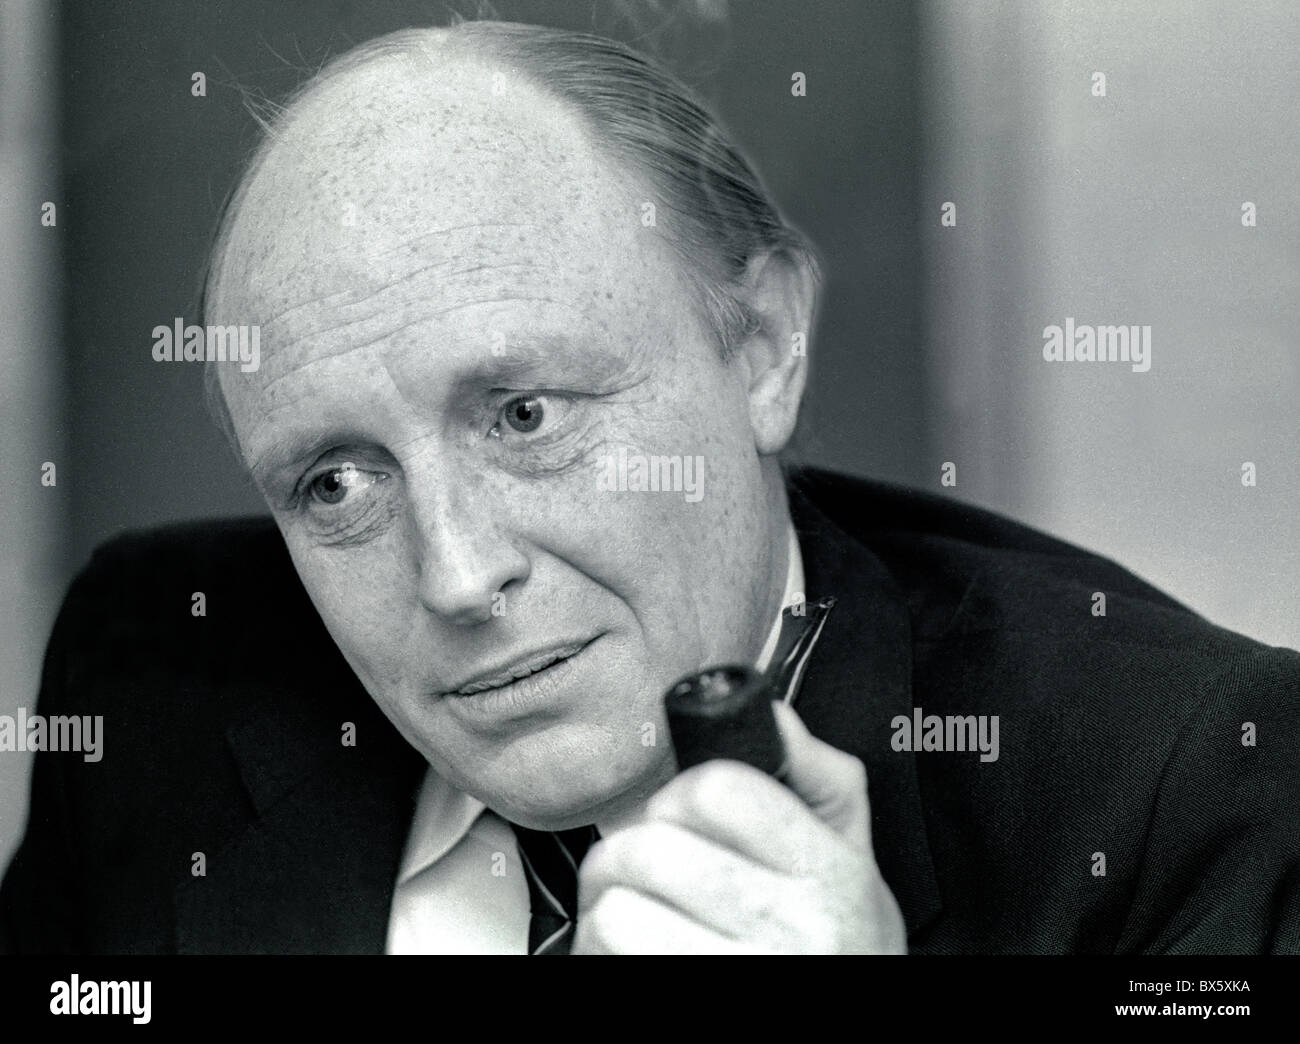 Neil Kinnock, British Labour politician. He was an MP from 1970 to 1995 and was Labour leader from 1983 until 1992 Stock Photo